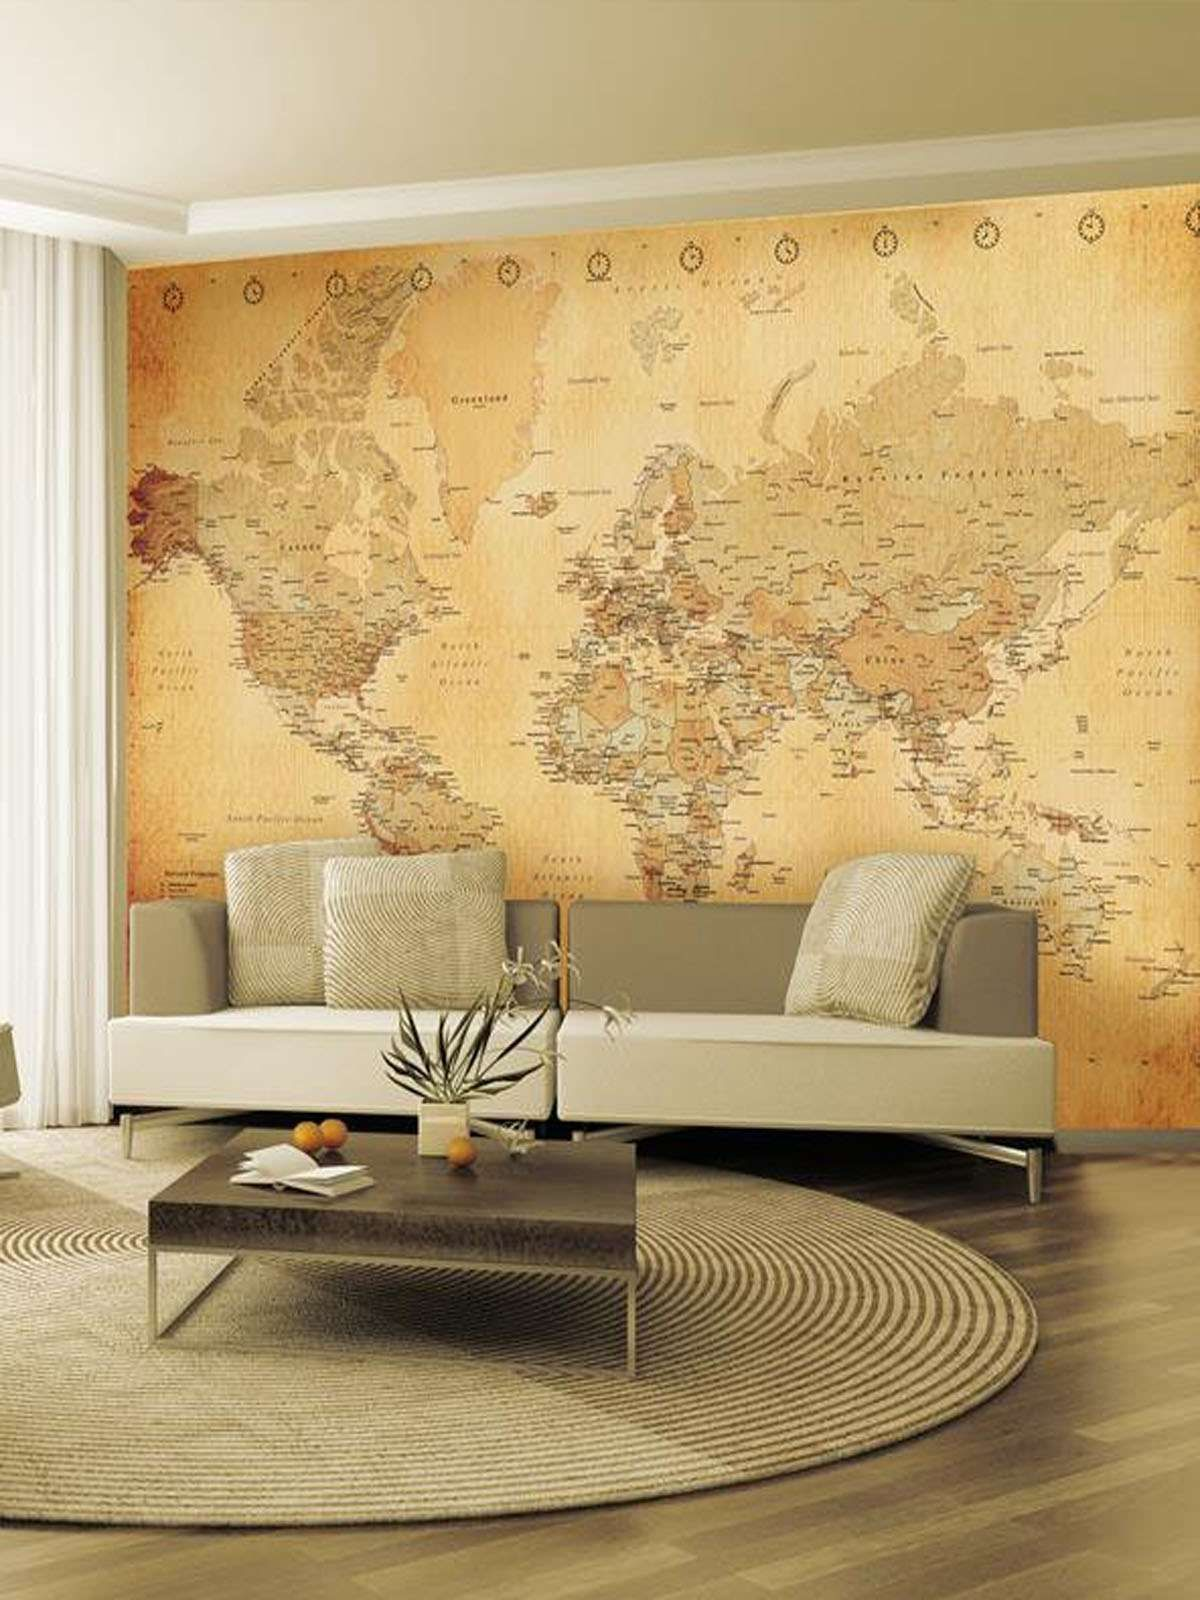 Old Map Giant Easy Hang Wall Mural | DIY Floors, Walls, Ceilings ...